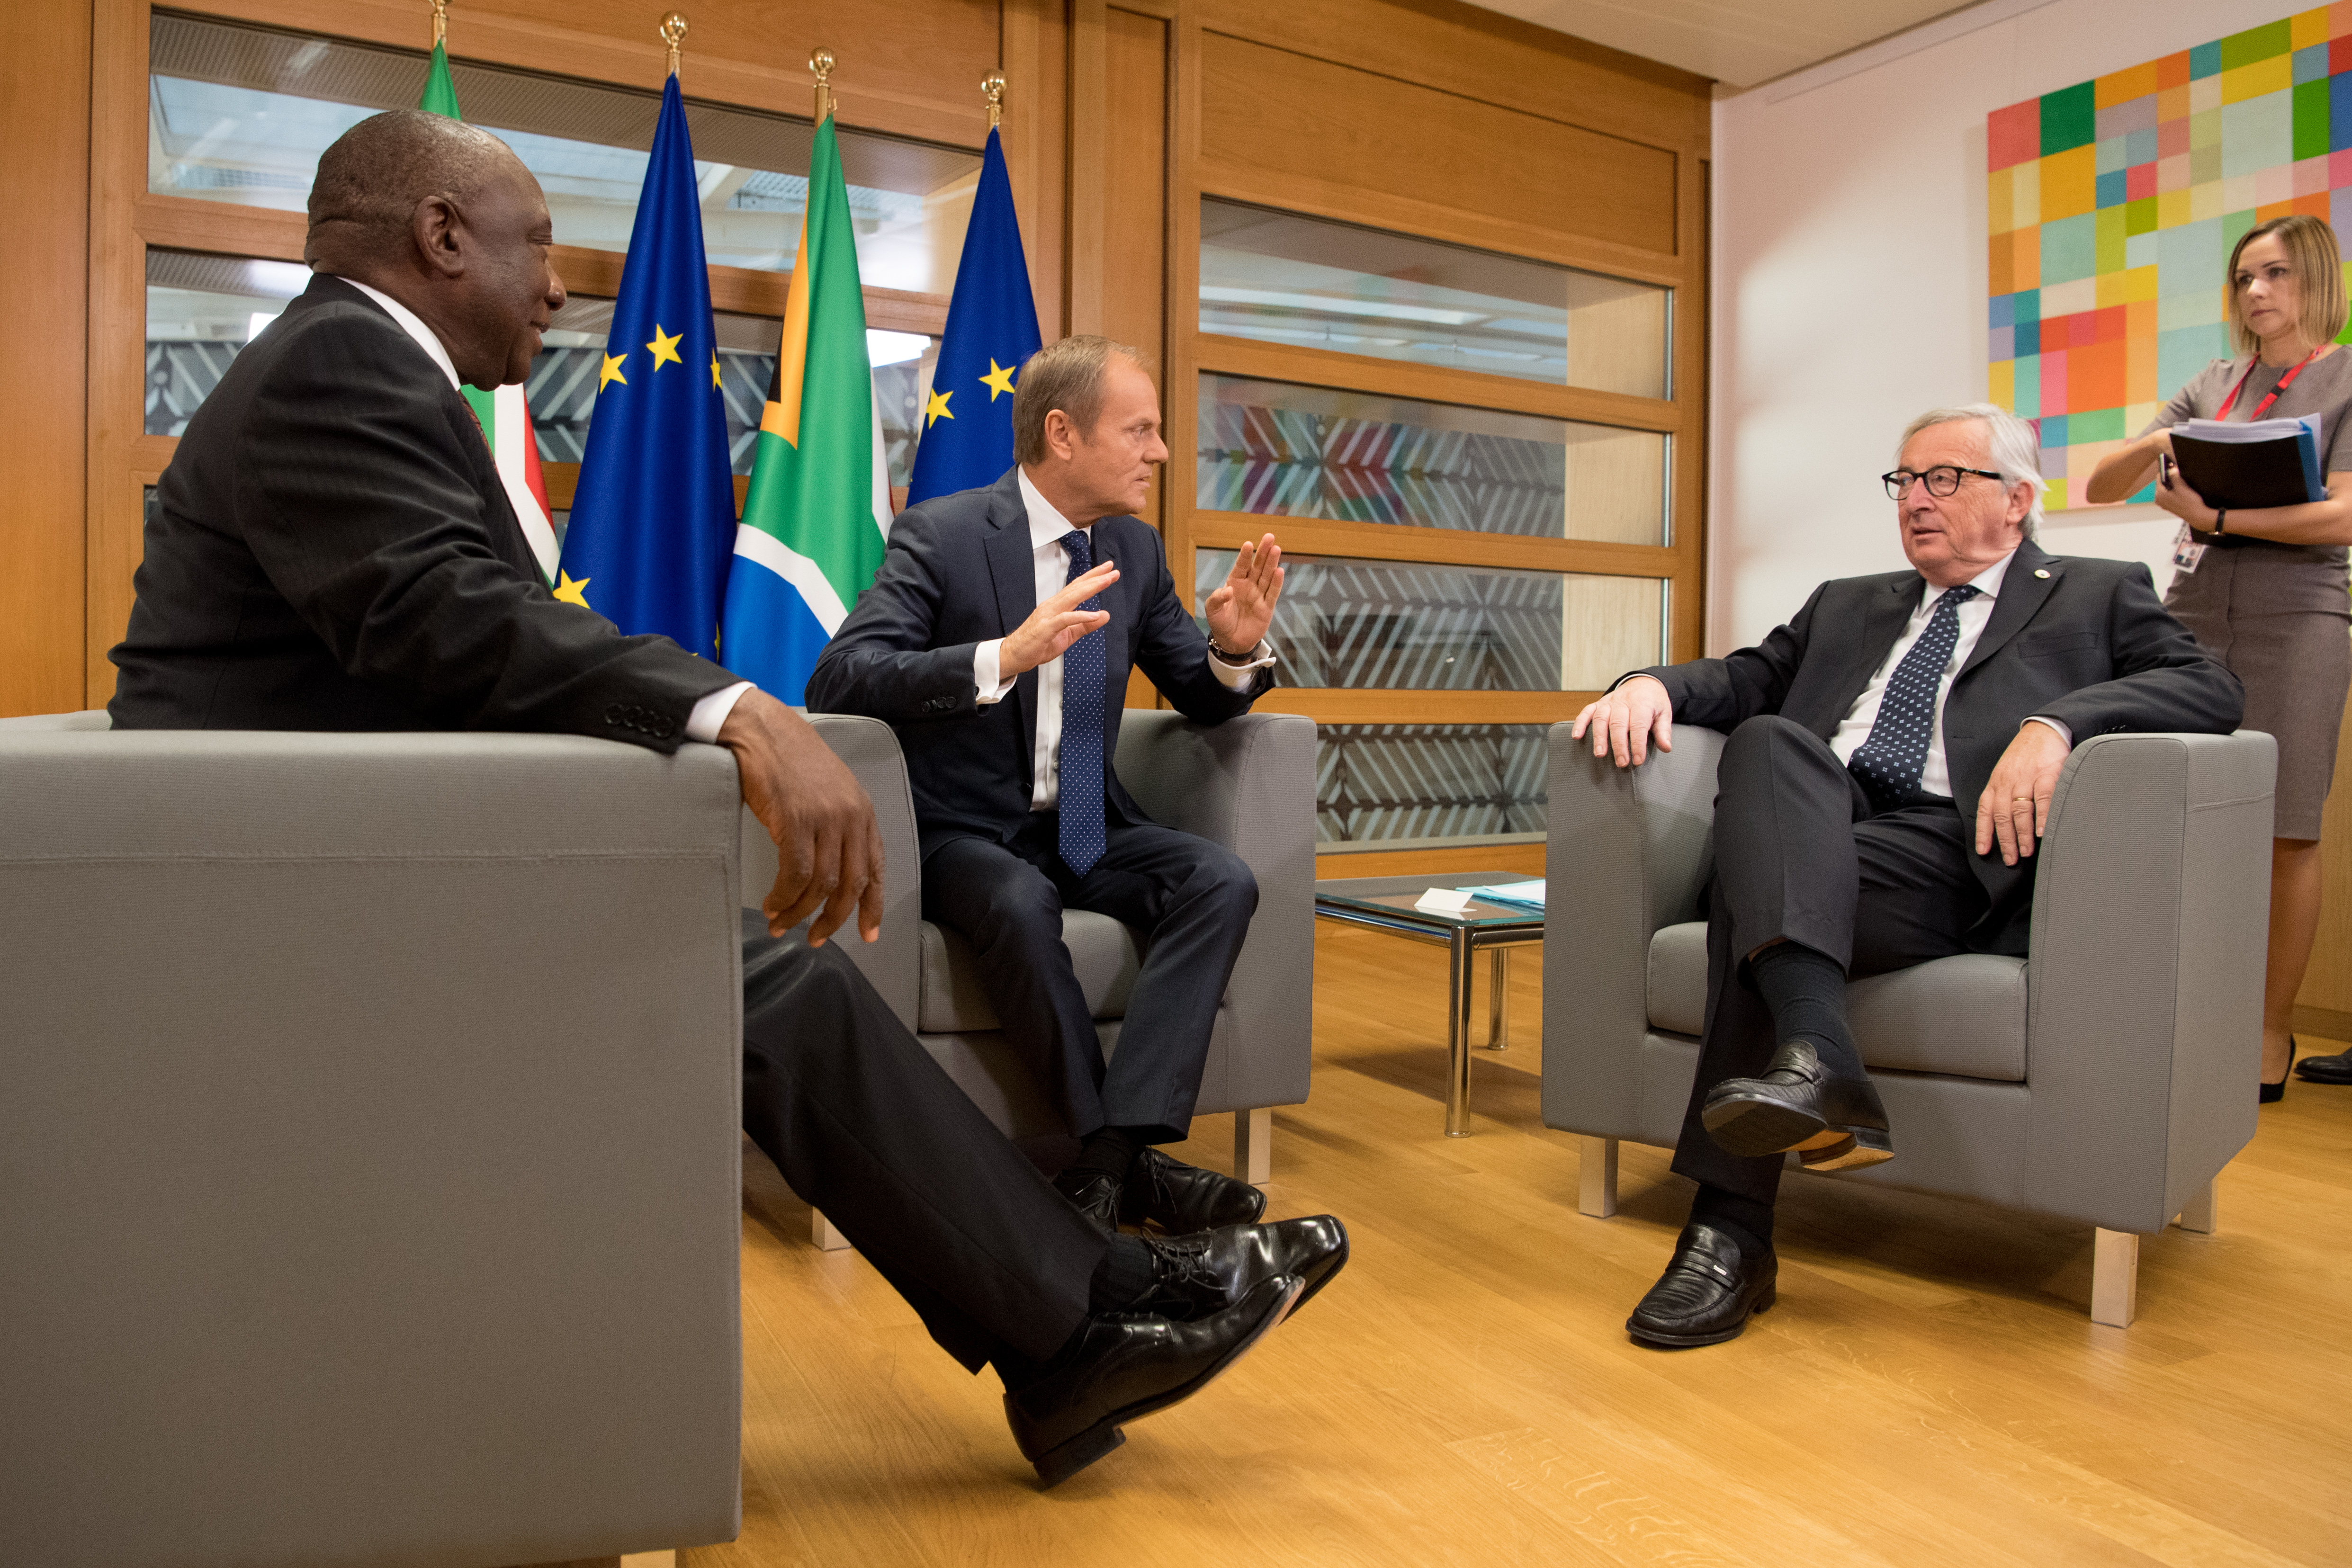 Participation of Jean-Claude Juncker, President of the EC in the EU-South Africa summit.